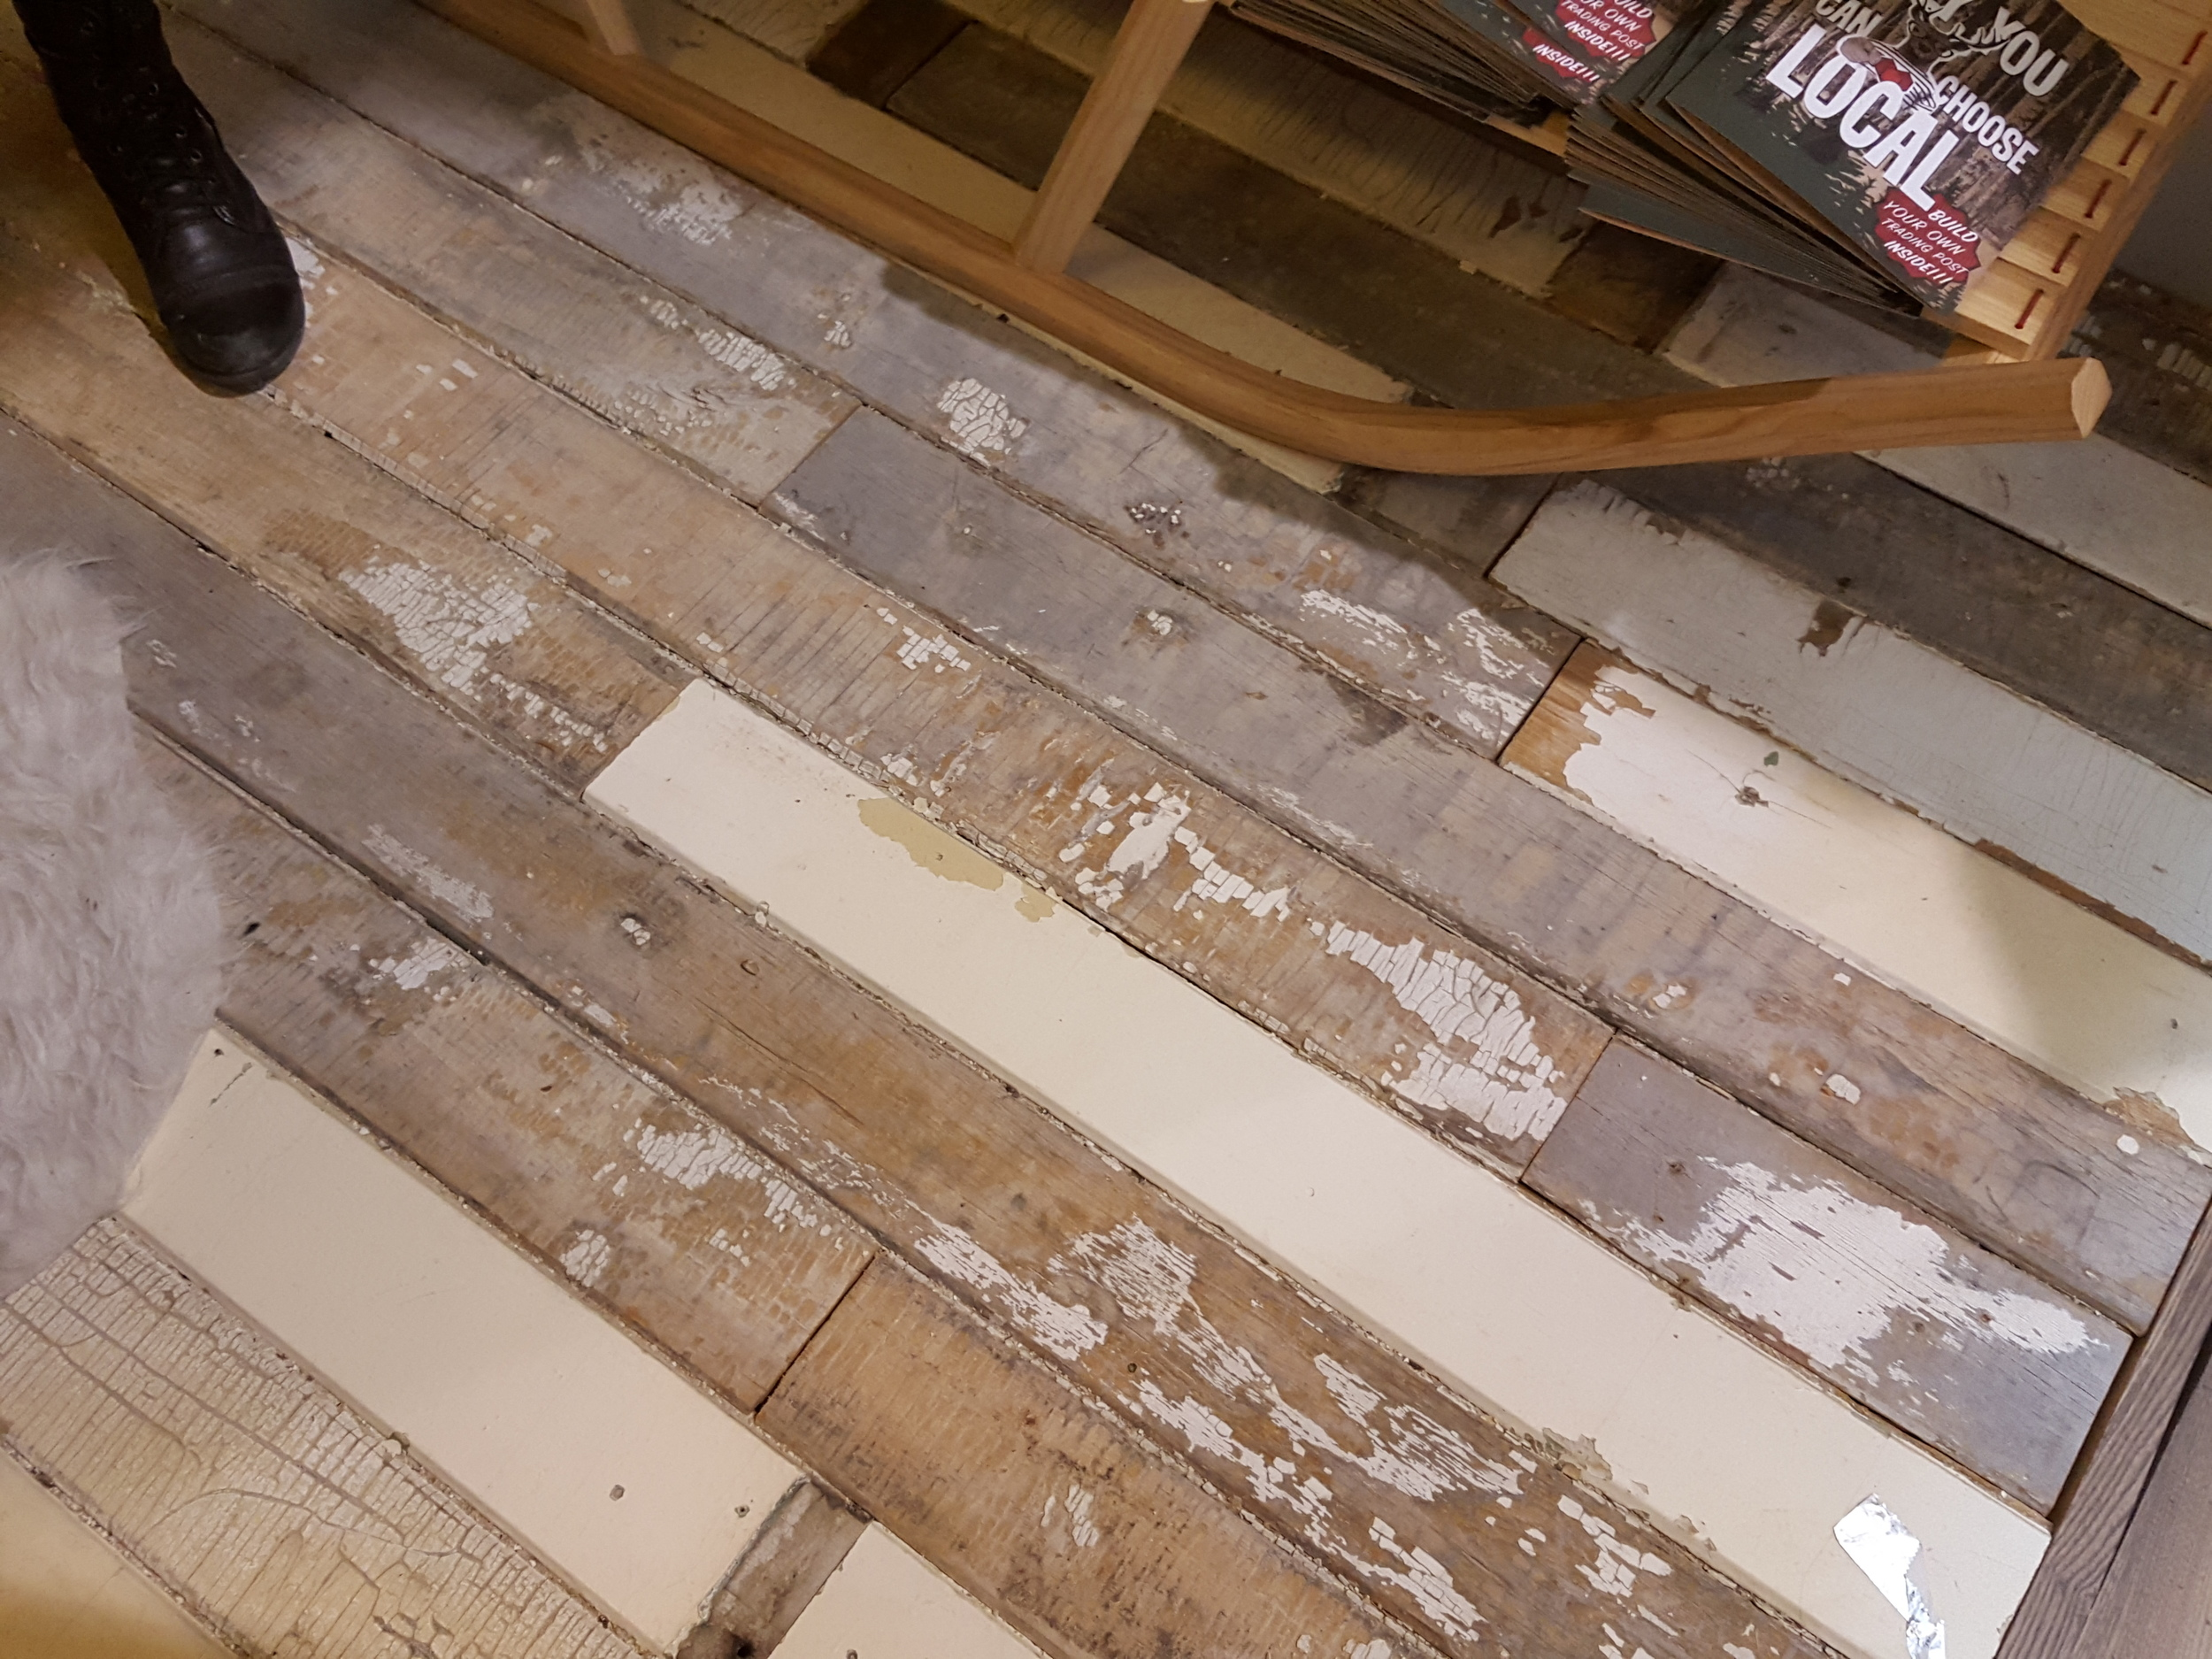 I fell in love with these rustic recycled floors!